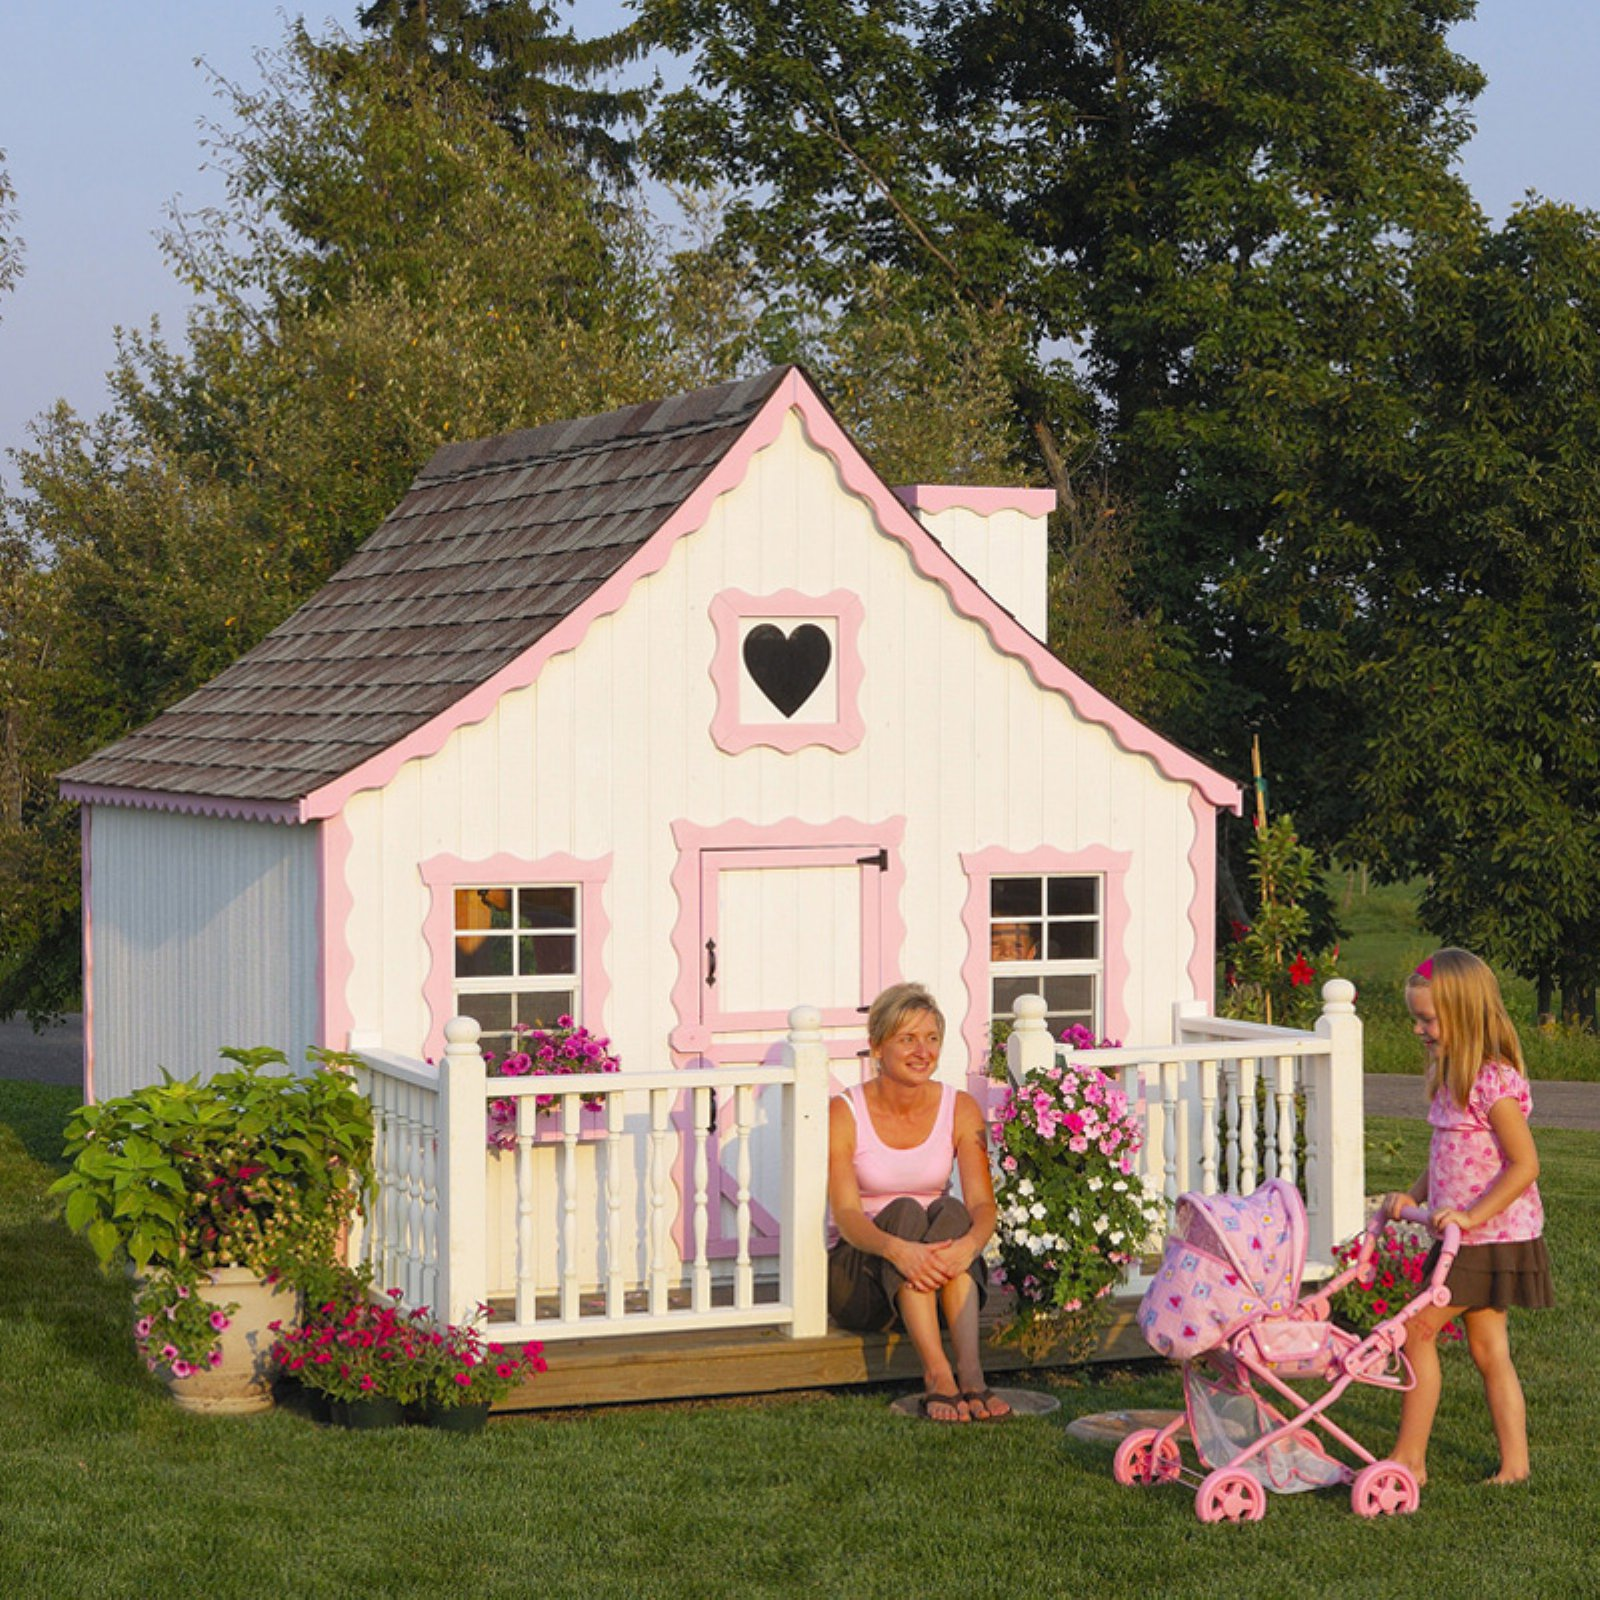 Little Cottage Gingerbread 8 x 8 ft. Wood Playhouse by Little Cottage Co